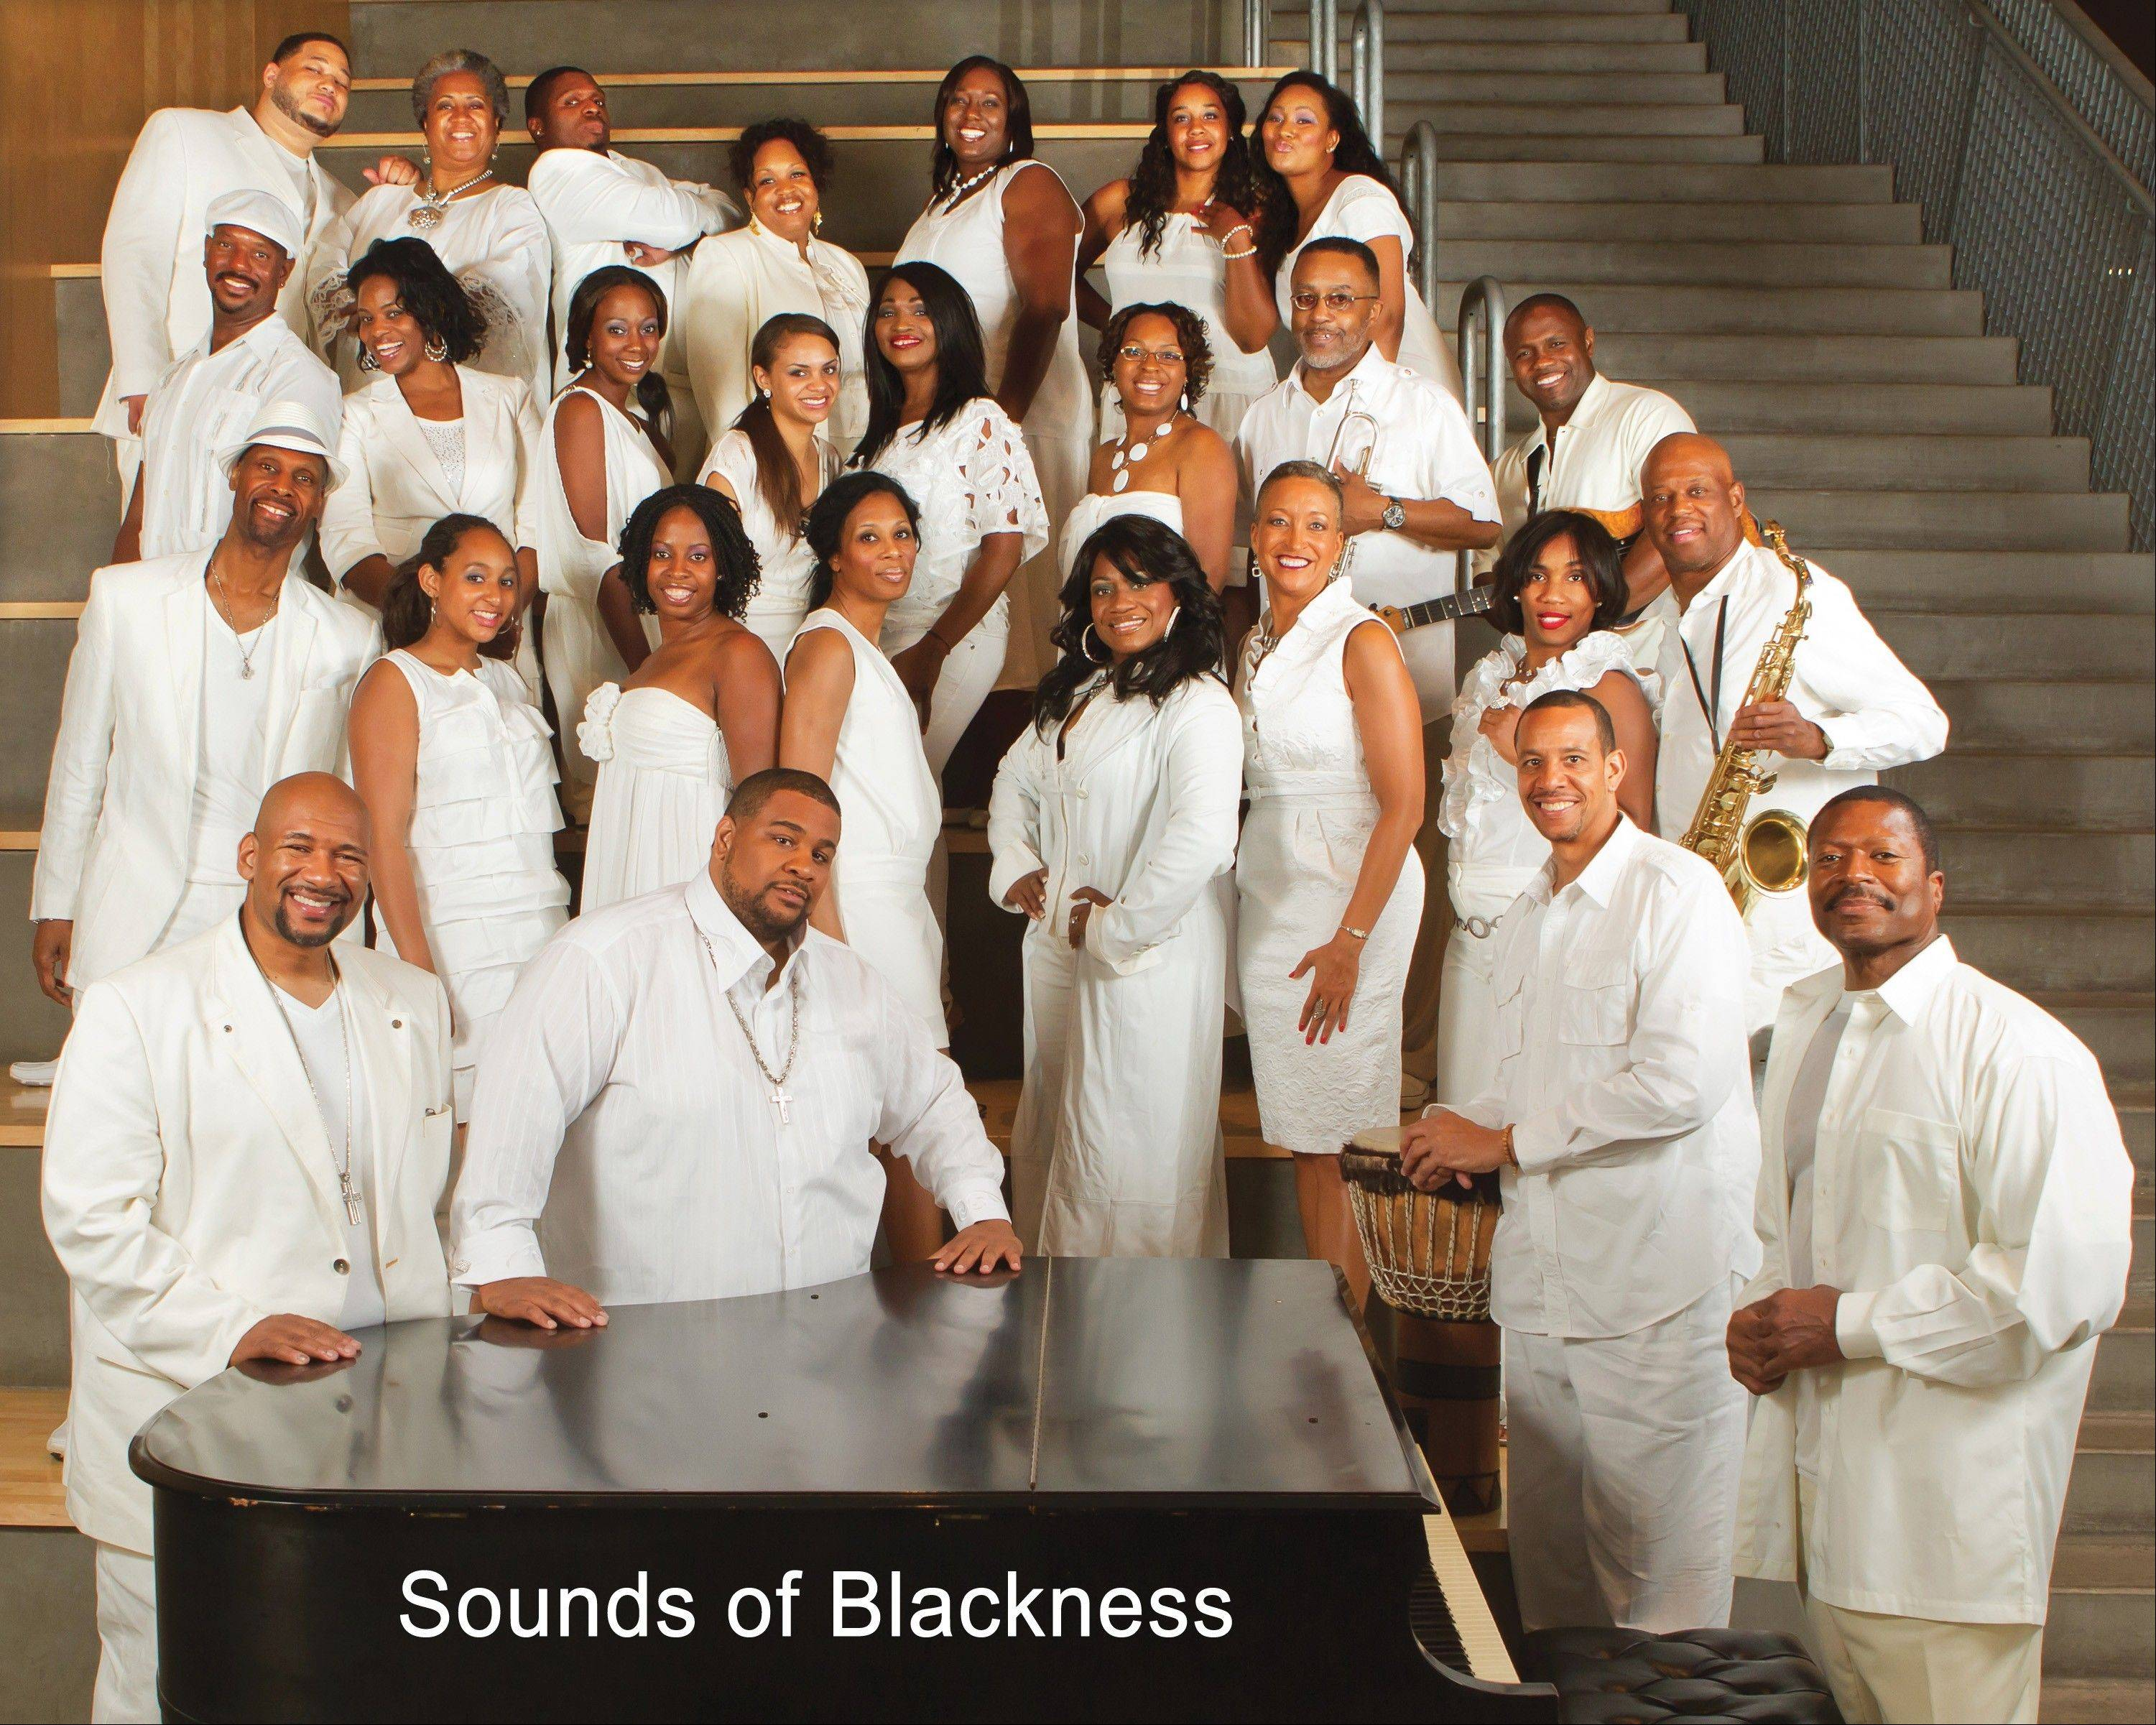 The Grammy Award-winning group Sounds of Blackness will perform at the College of Lake County's 29th Annual Salute to Gospel Music program at 7 p.m. Saturday, March 2, at the Genesee Theatre.